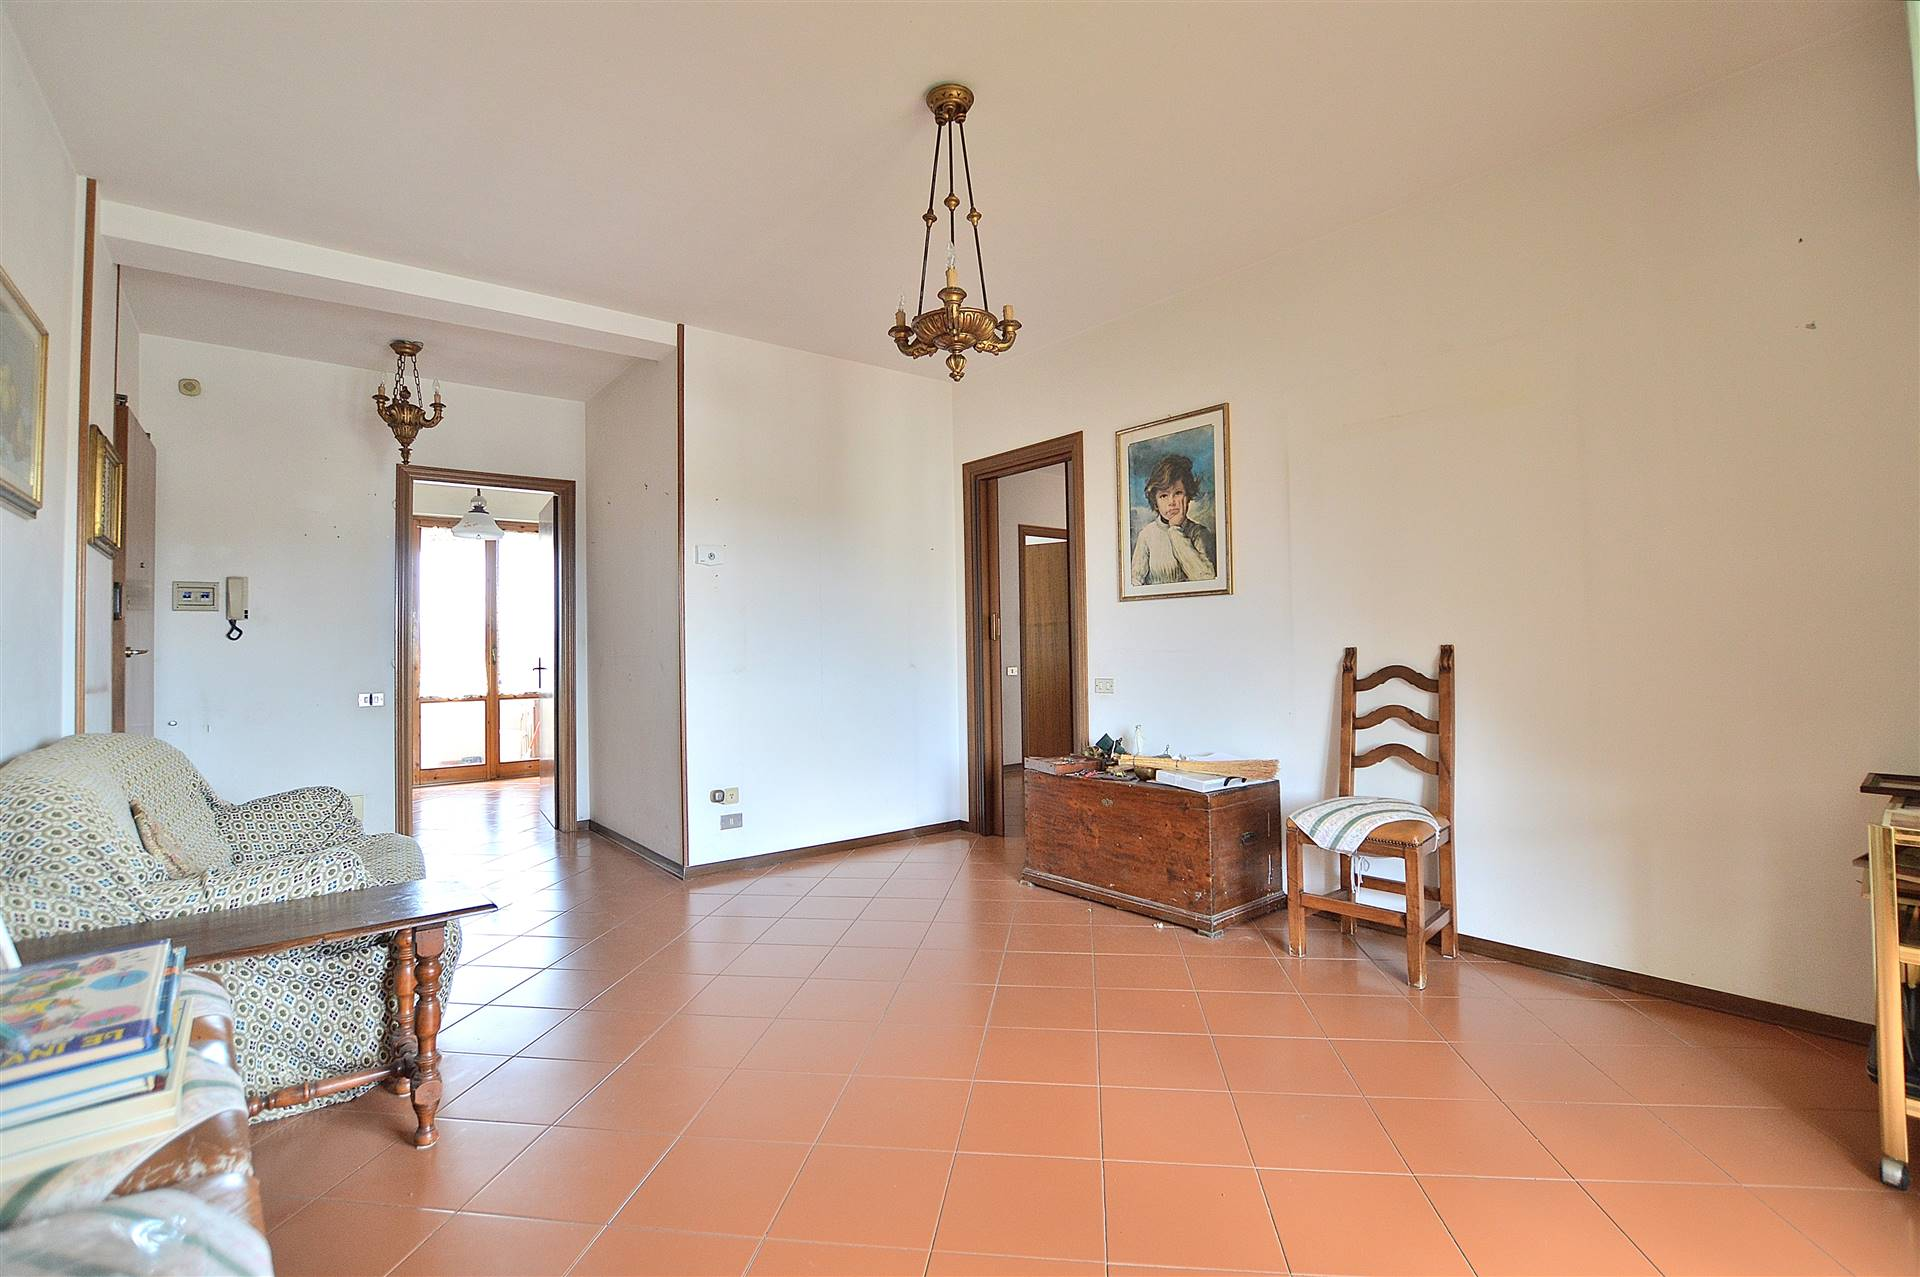 SAN MINIATO, SIENA, Apartment for sale of 100 Sq. mt., Good condition, Heating Individual heating system, Energetic class: F, Epi: 127,58 kwh/m2 year, placed at 7° on 8, composed by: 5 Rooms,